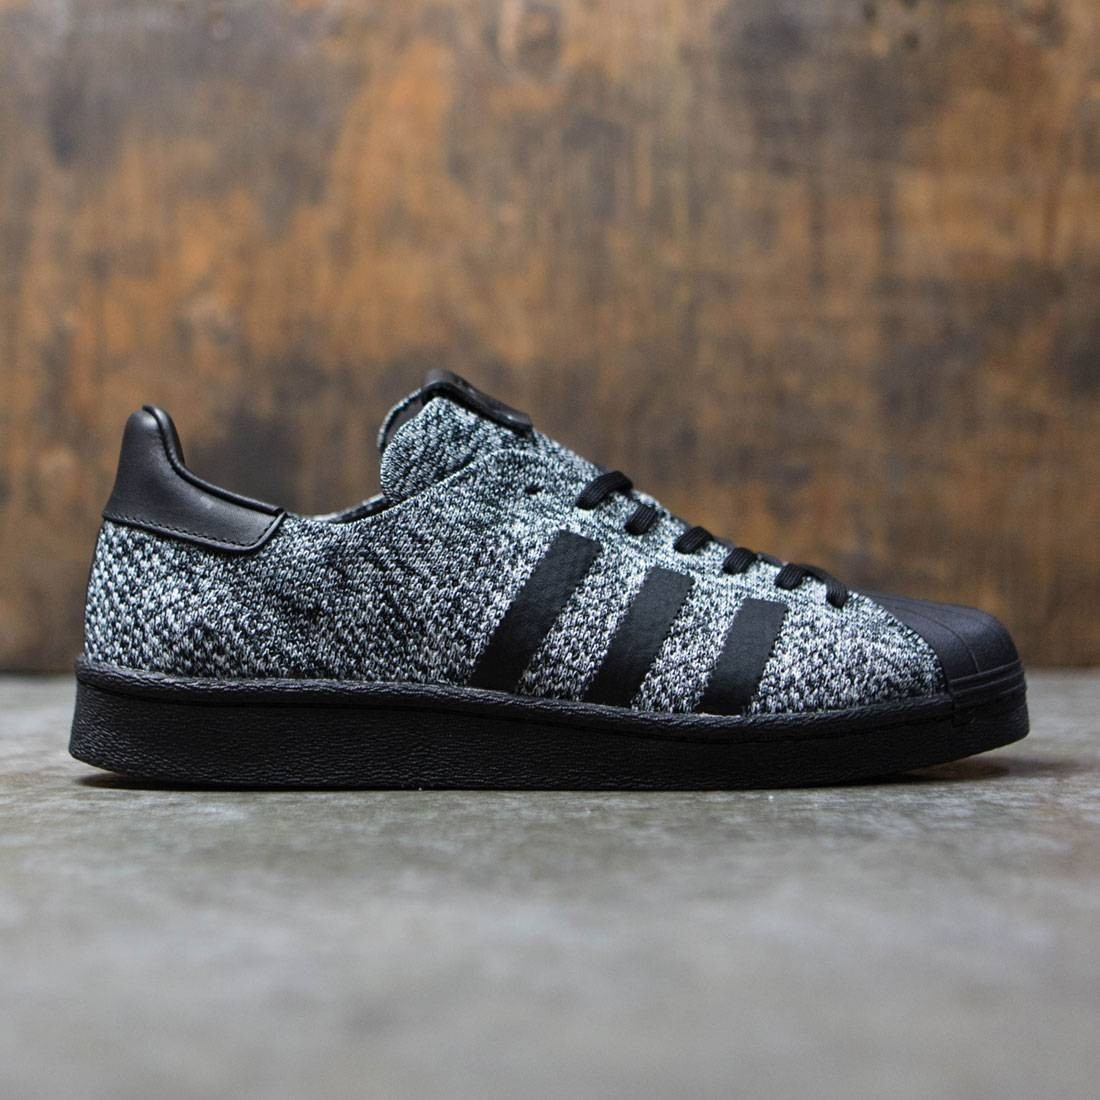 【海外限定】アディダス スーパースター ブースト 靴 スニーカー 【 ADIDAS SUPERSTAR CONSORTIUM X SNEAKERSNSTUFF SOCIAL STATUS MEN BOOST SNEAKER EXCHANGE WHITE BLACK 】